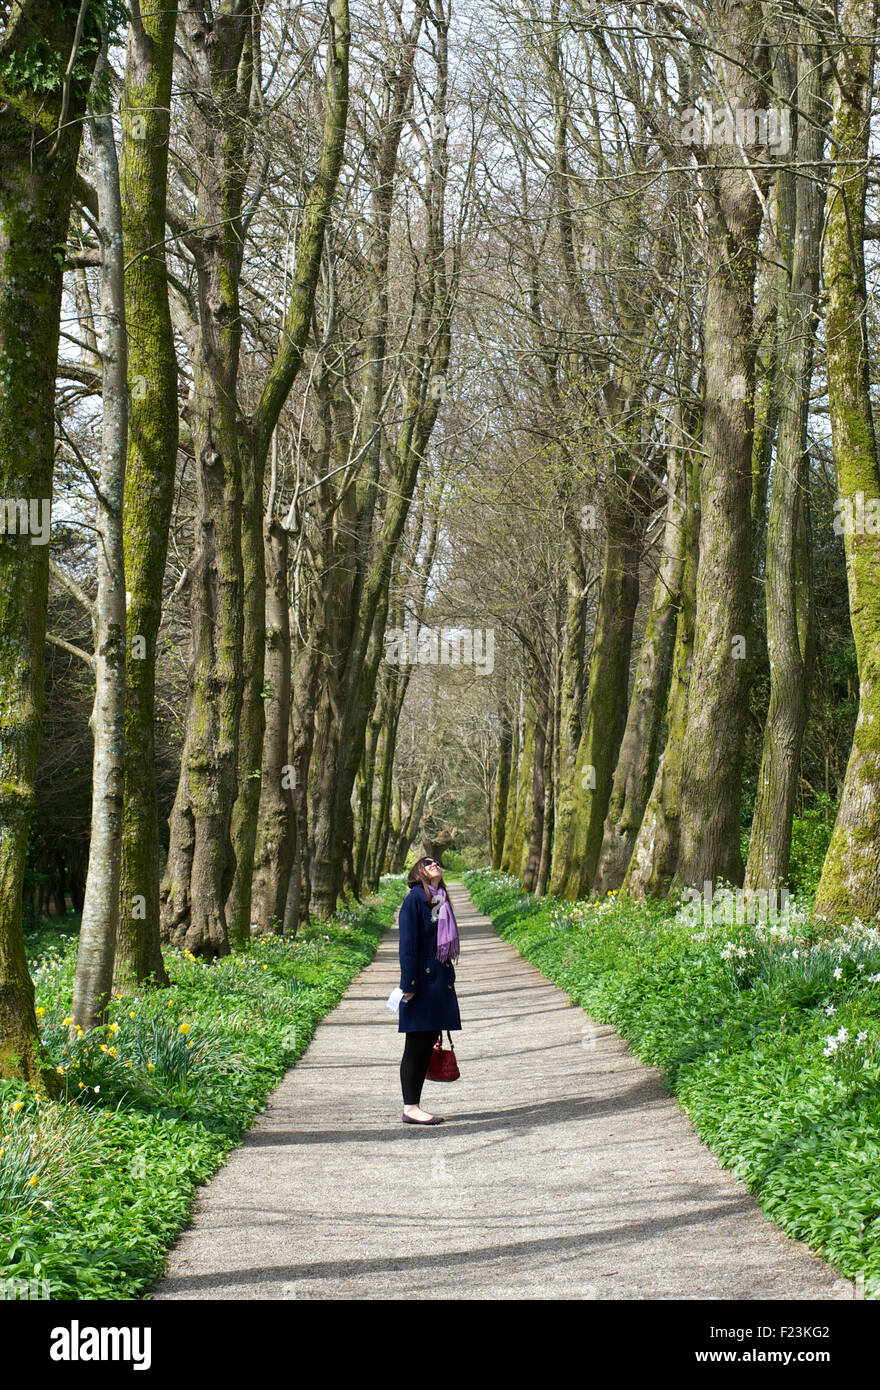 Woman standing on a path flanked with tall trees and looking up. Devon, England - Stock Image